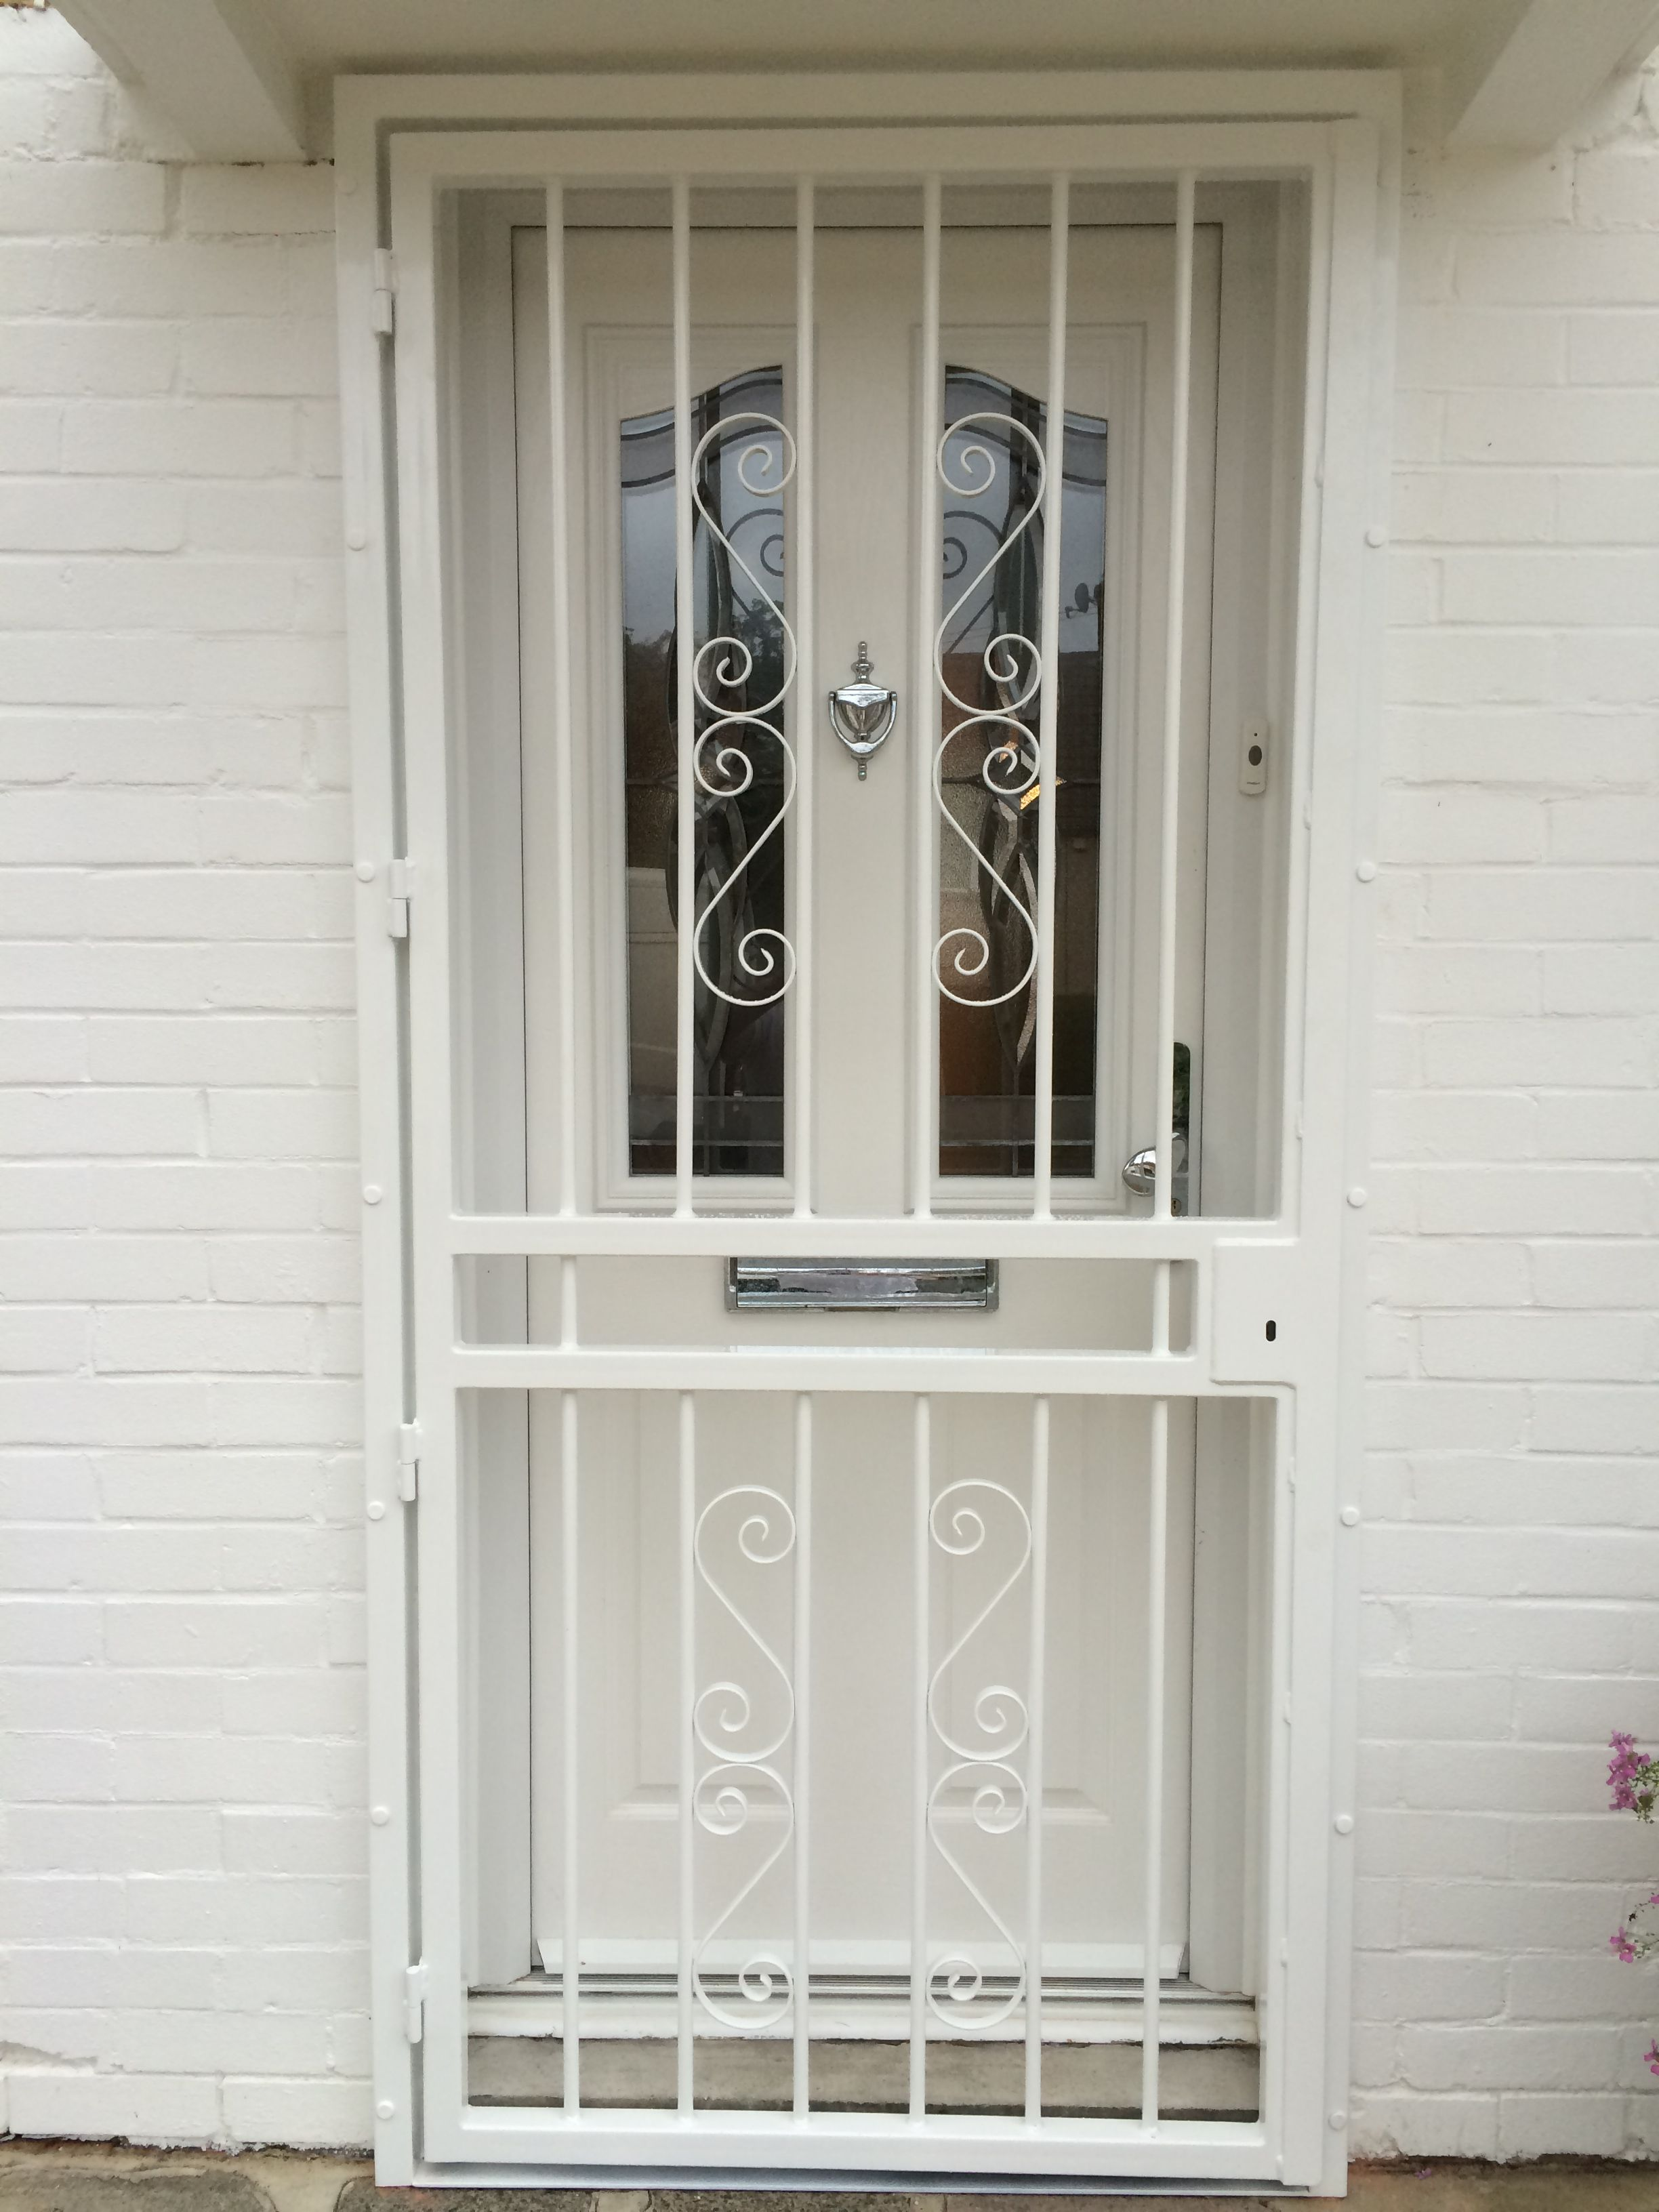 Rsg3000 Security Door Gate Fitted To The Main Door Of A Private Property In Sutton Home Window Grill Design Door Gate Design Entrance Door Design